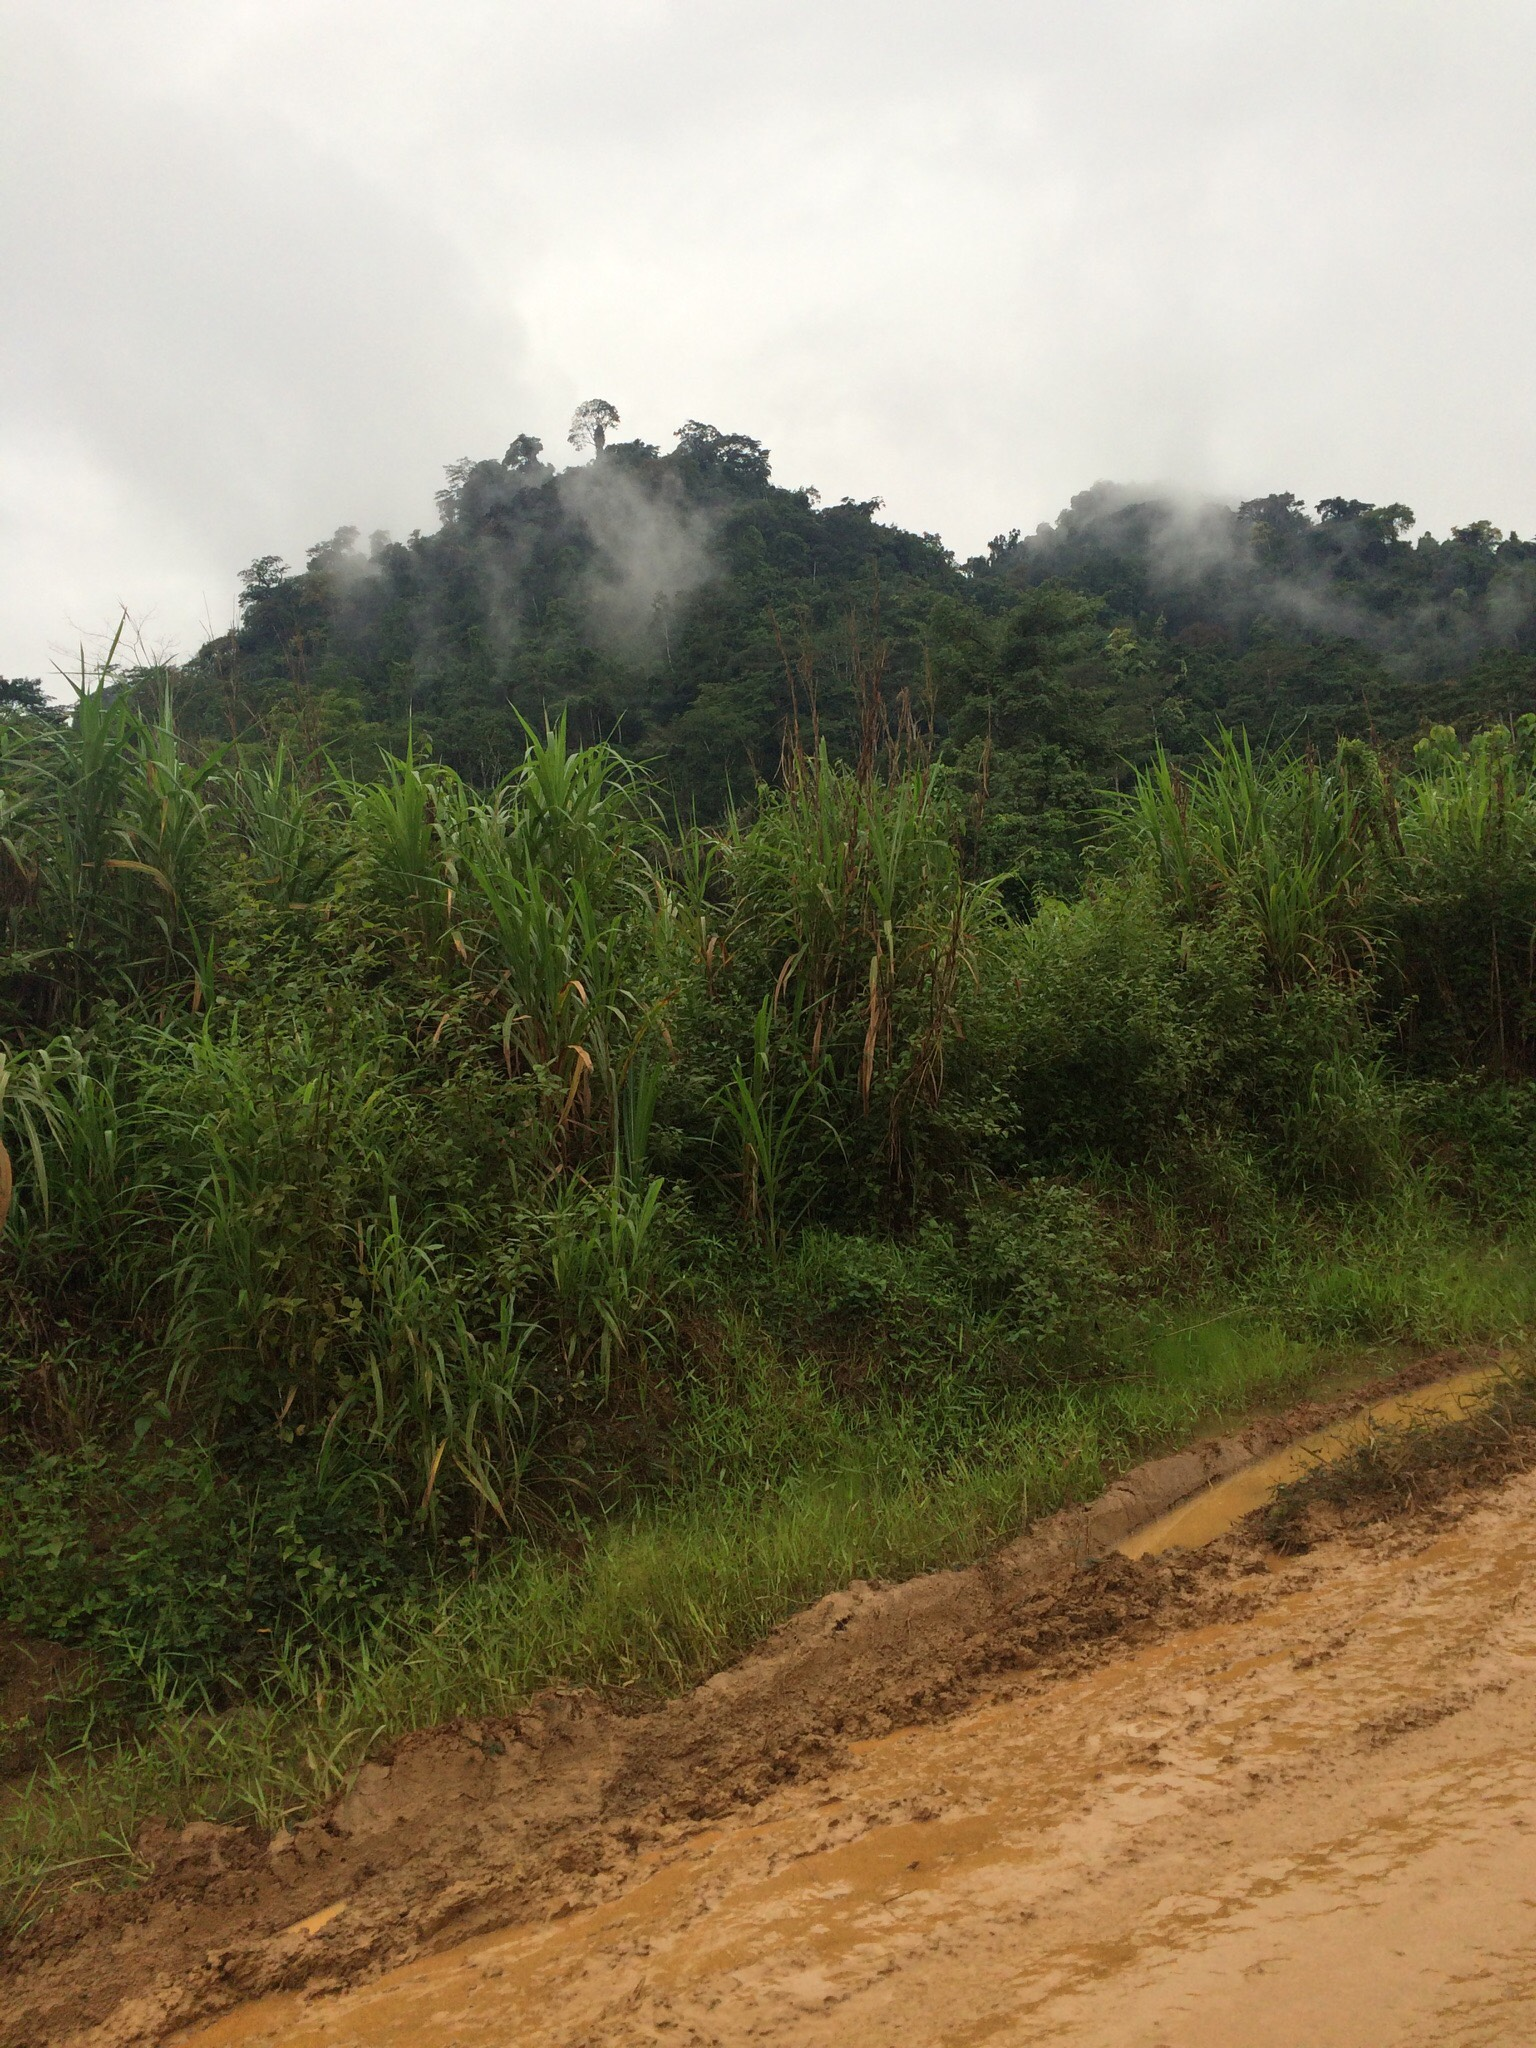 Intact section of rainforest in Cameroon.